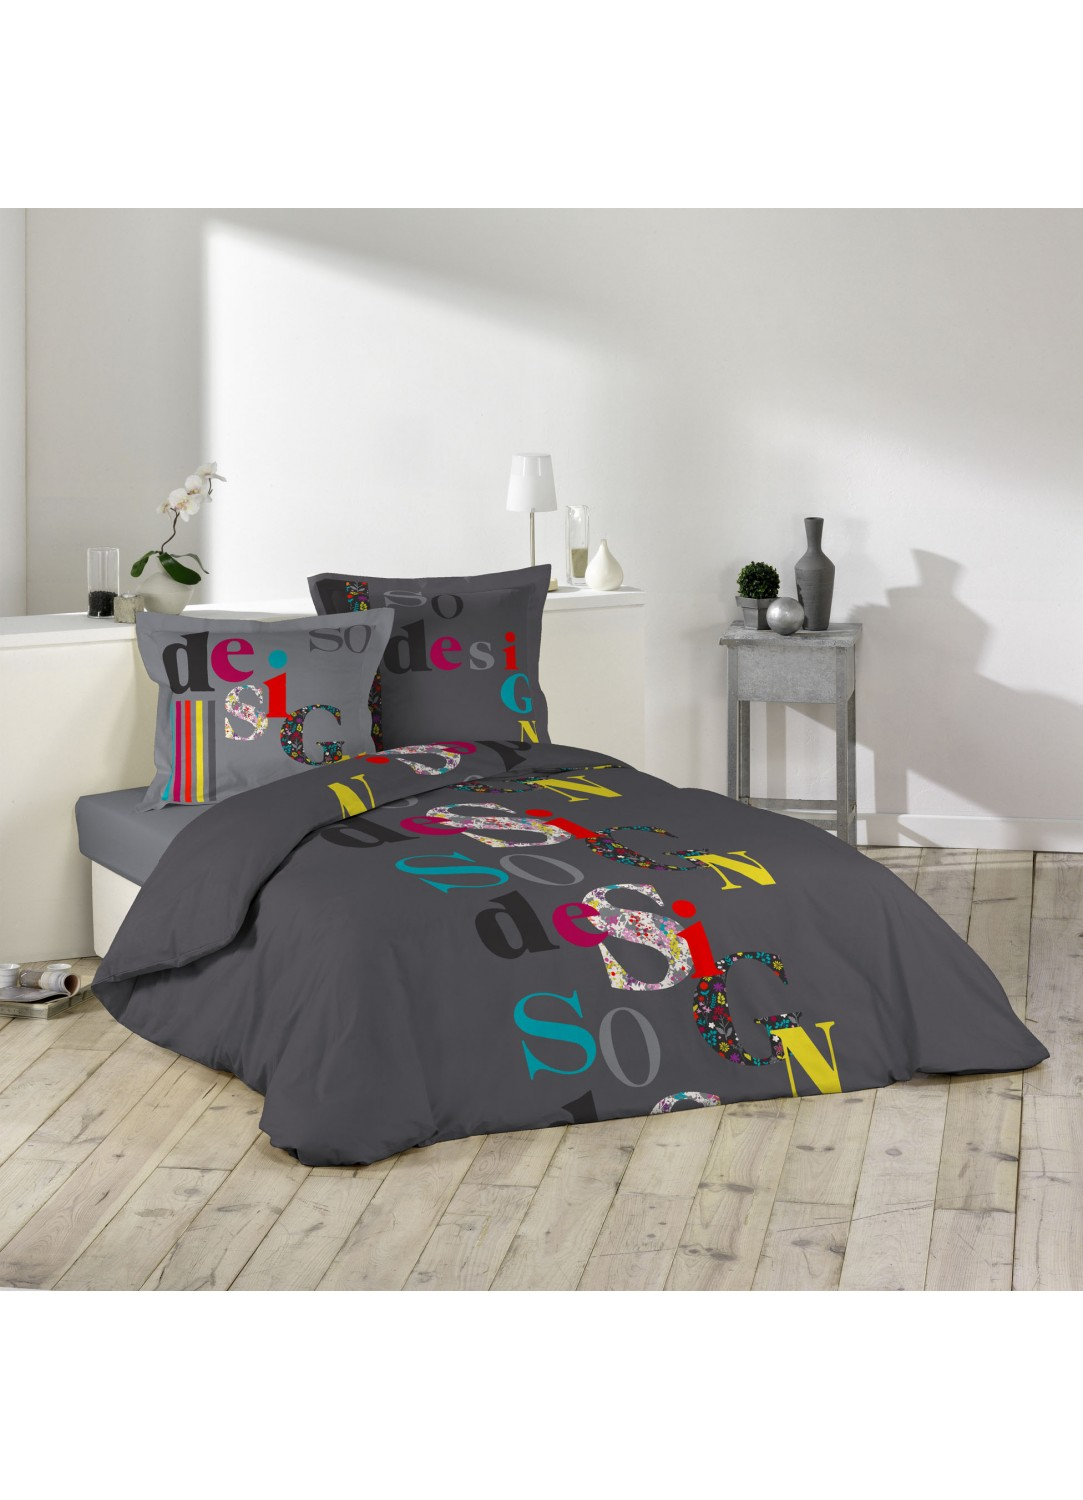 parure de lit imprim e so design multicolors homemaison vente en ligne parures de lit. Black Bedroom Furniture Sets. Home Design Ideas